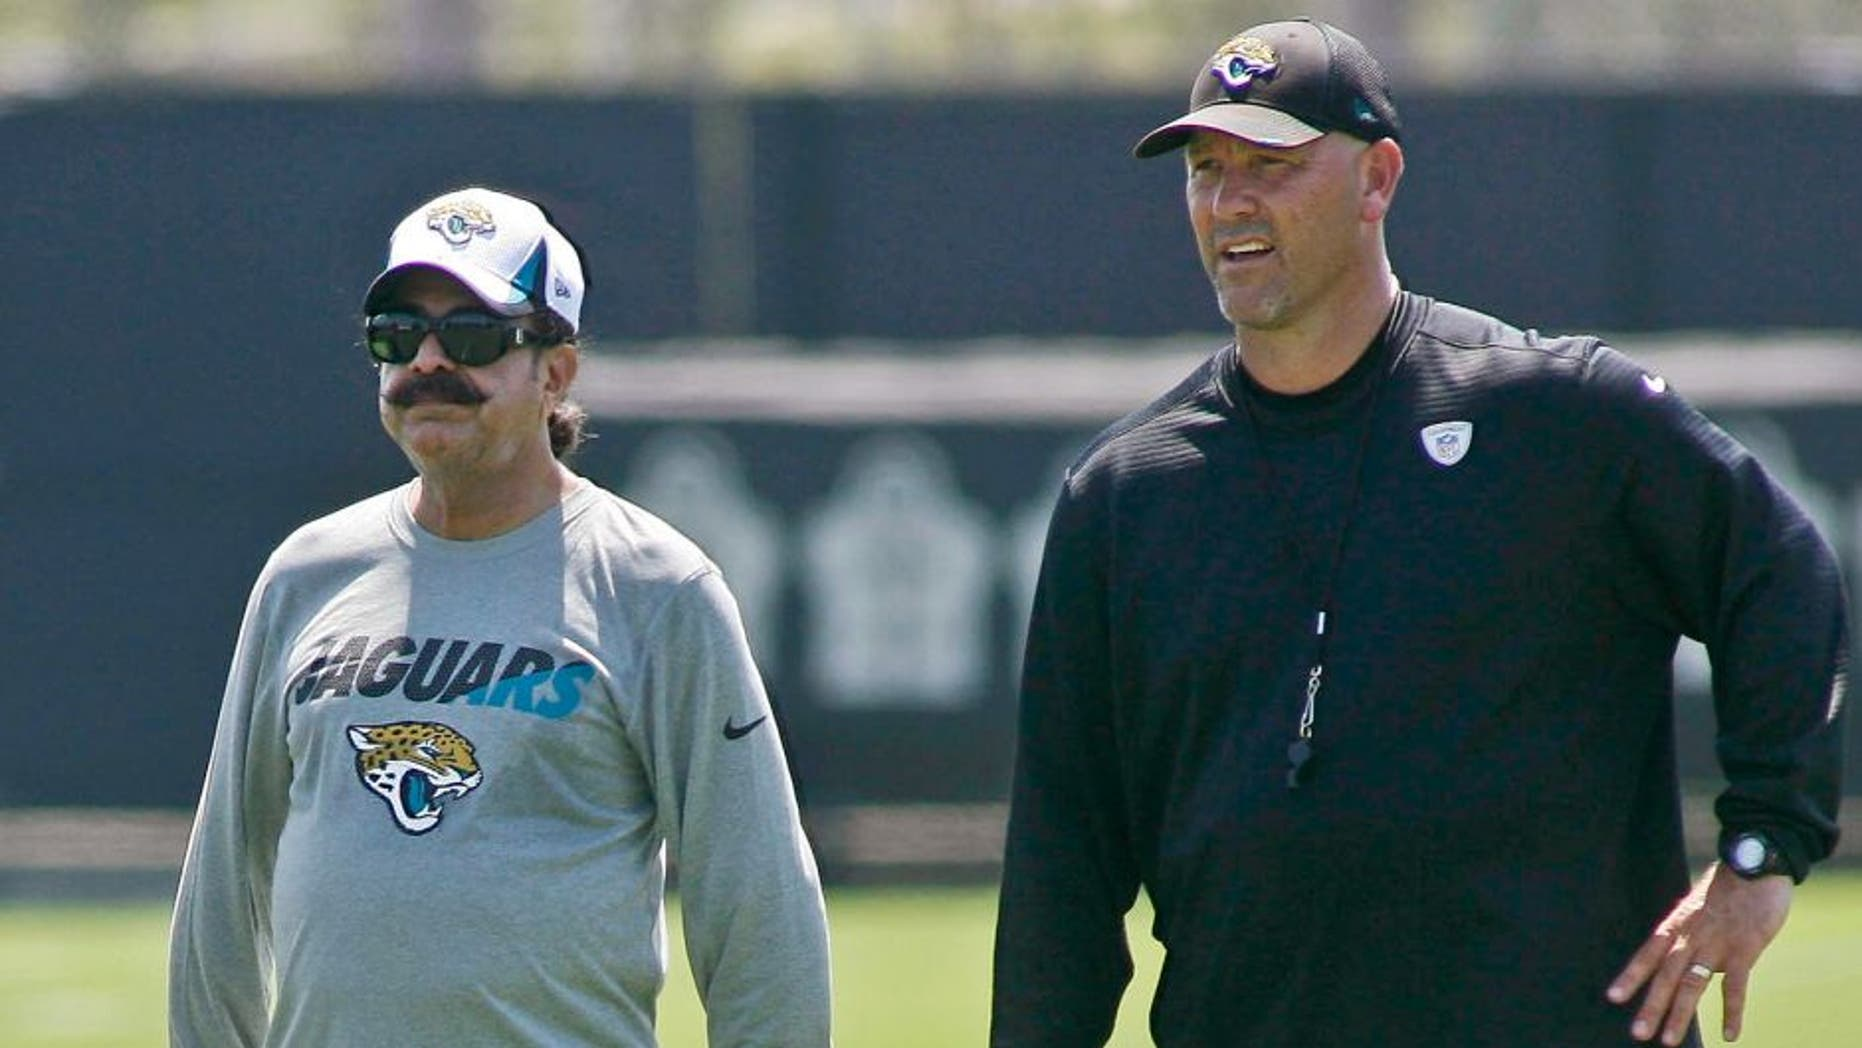 Jun 16, 2015; Jacksonville, FL, USA; Jacksonville Jaguars owner Shad Khan (left) and head coach Gus Bradley during minicamp at the Florida Blue Health and Wellness Practice Fields. Mandatory Credit: Phil Sears-USA TODAY Sports